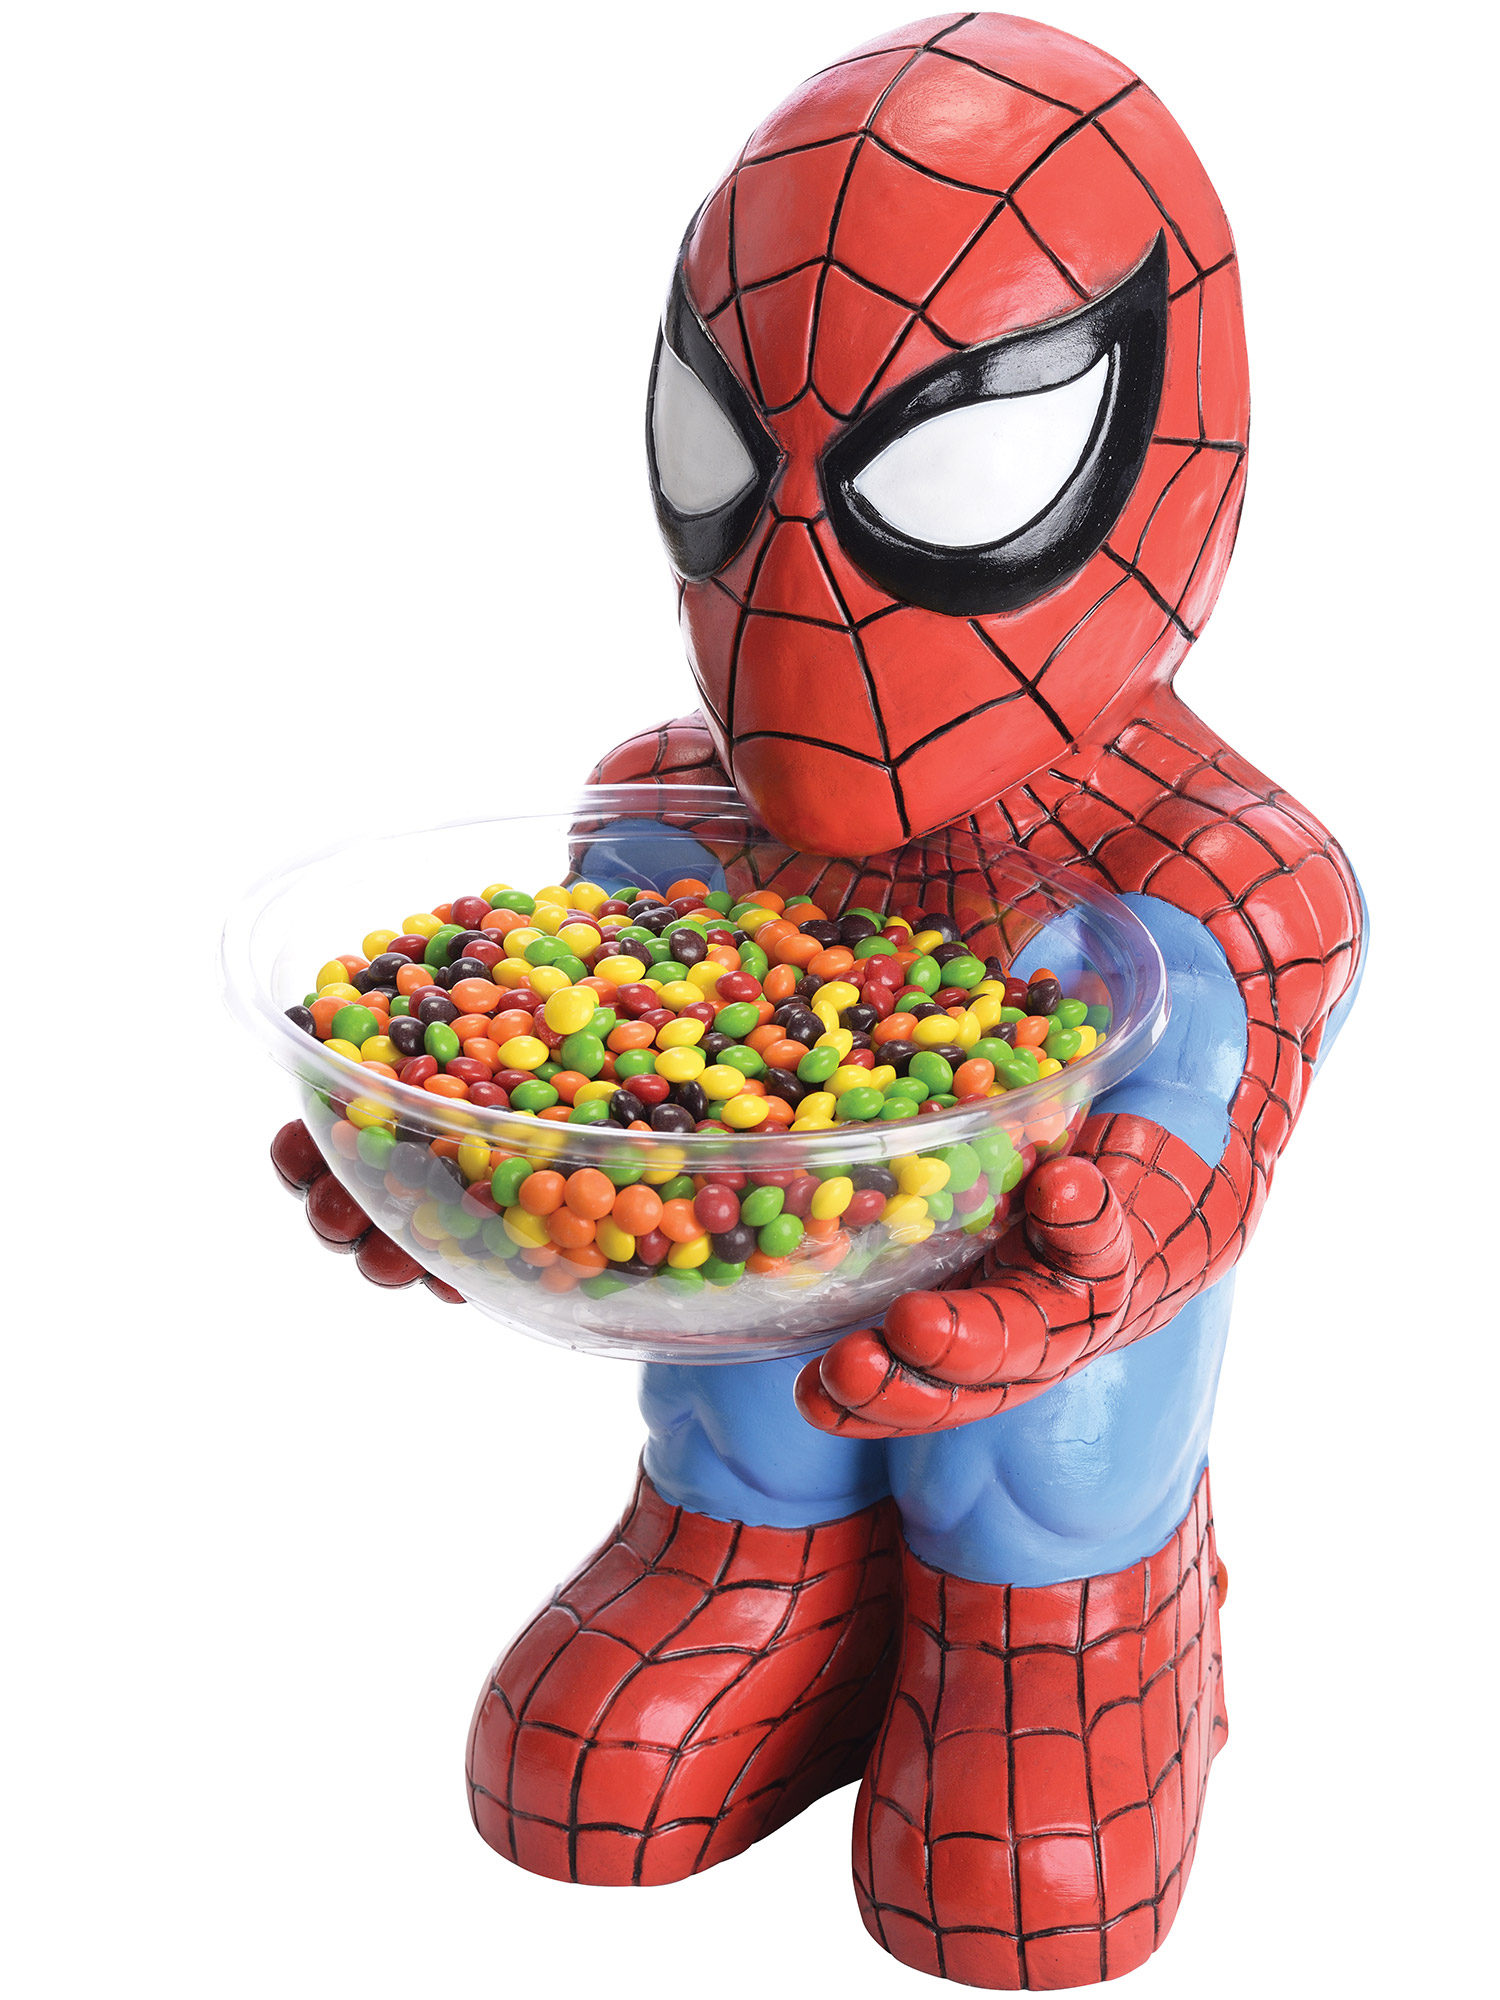 Candy Bowl Holder Statue Of Spider-Man 35690R